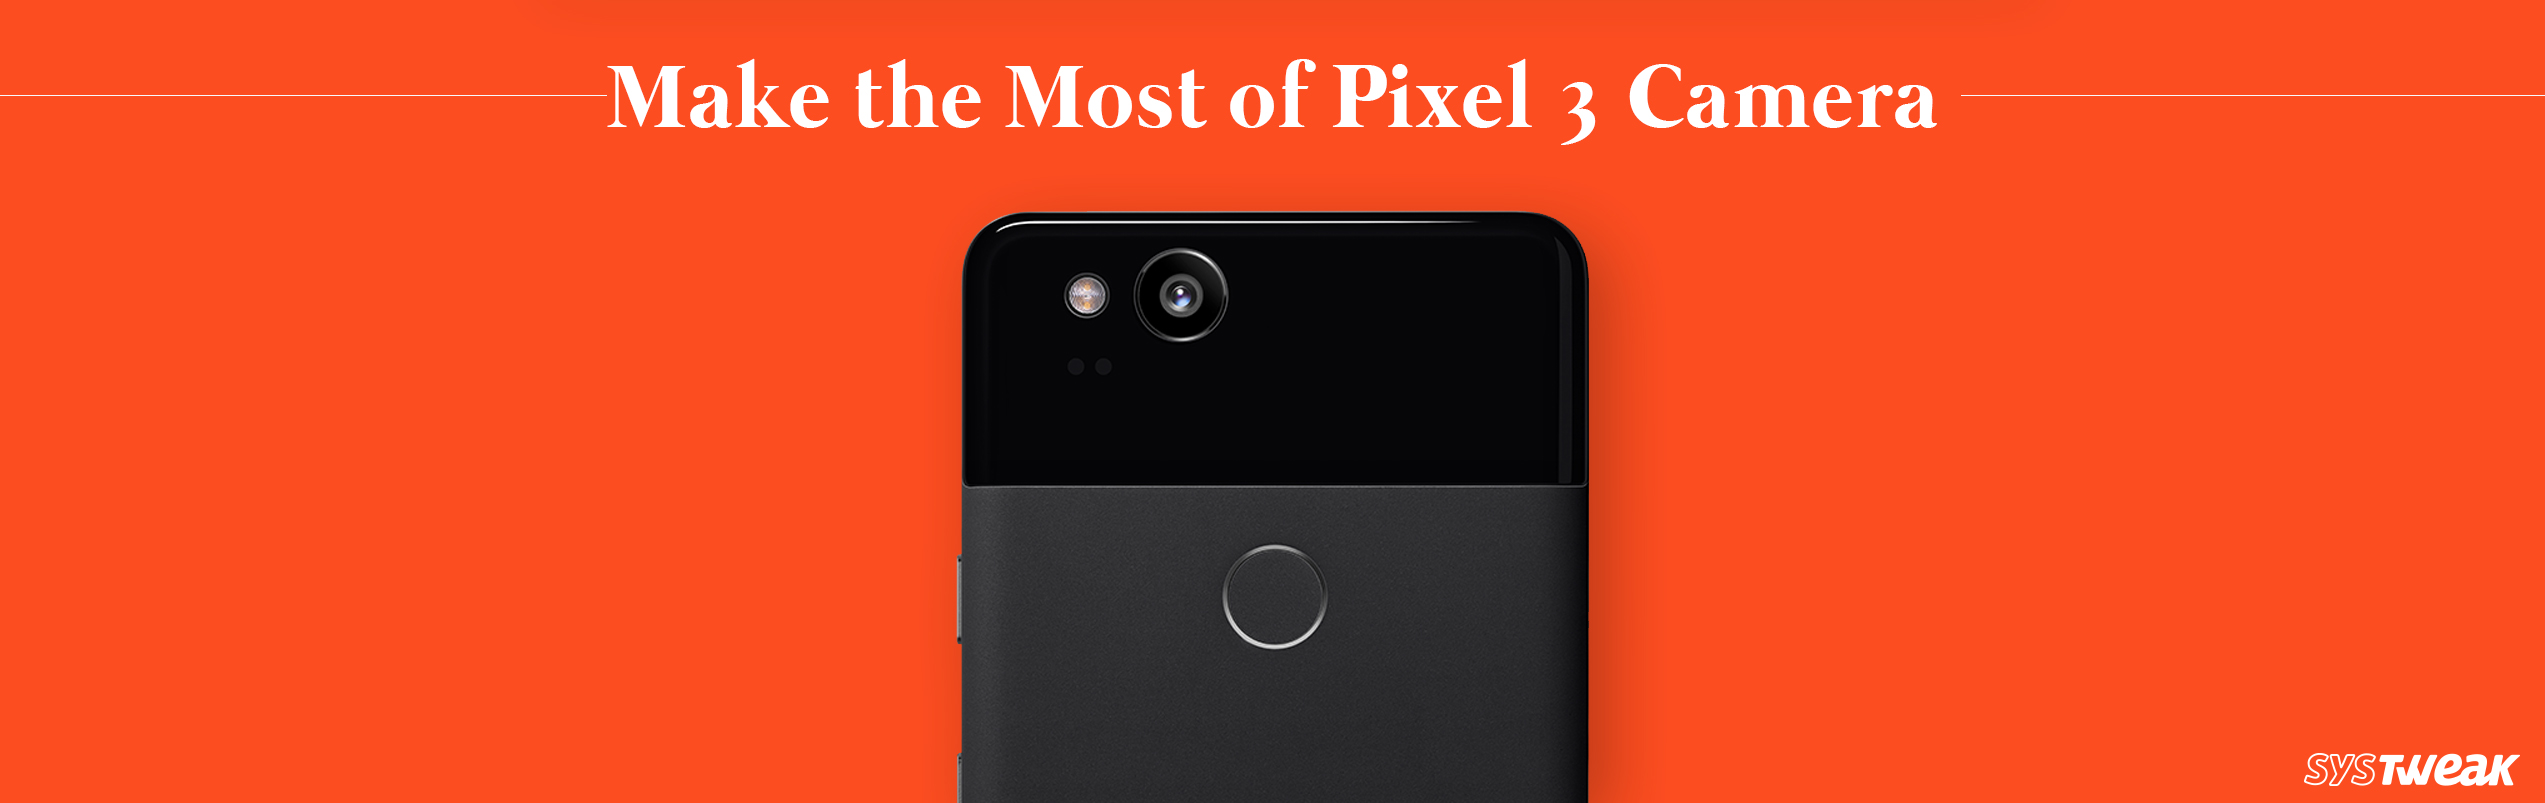 6 Pixel 3 Camera Tips and Tricks to Click Stunning Pictures